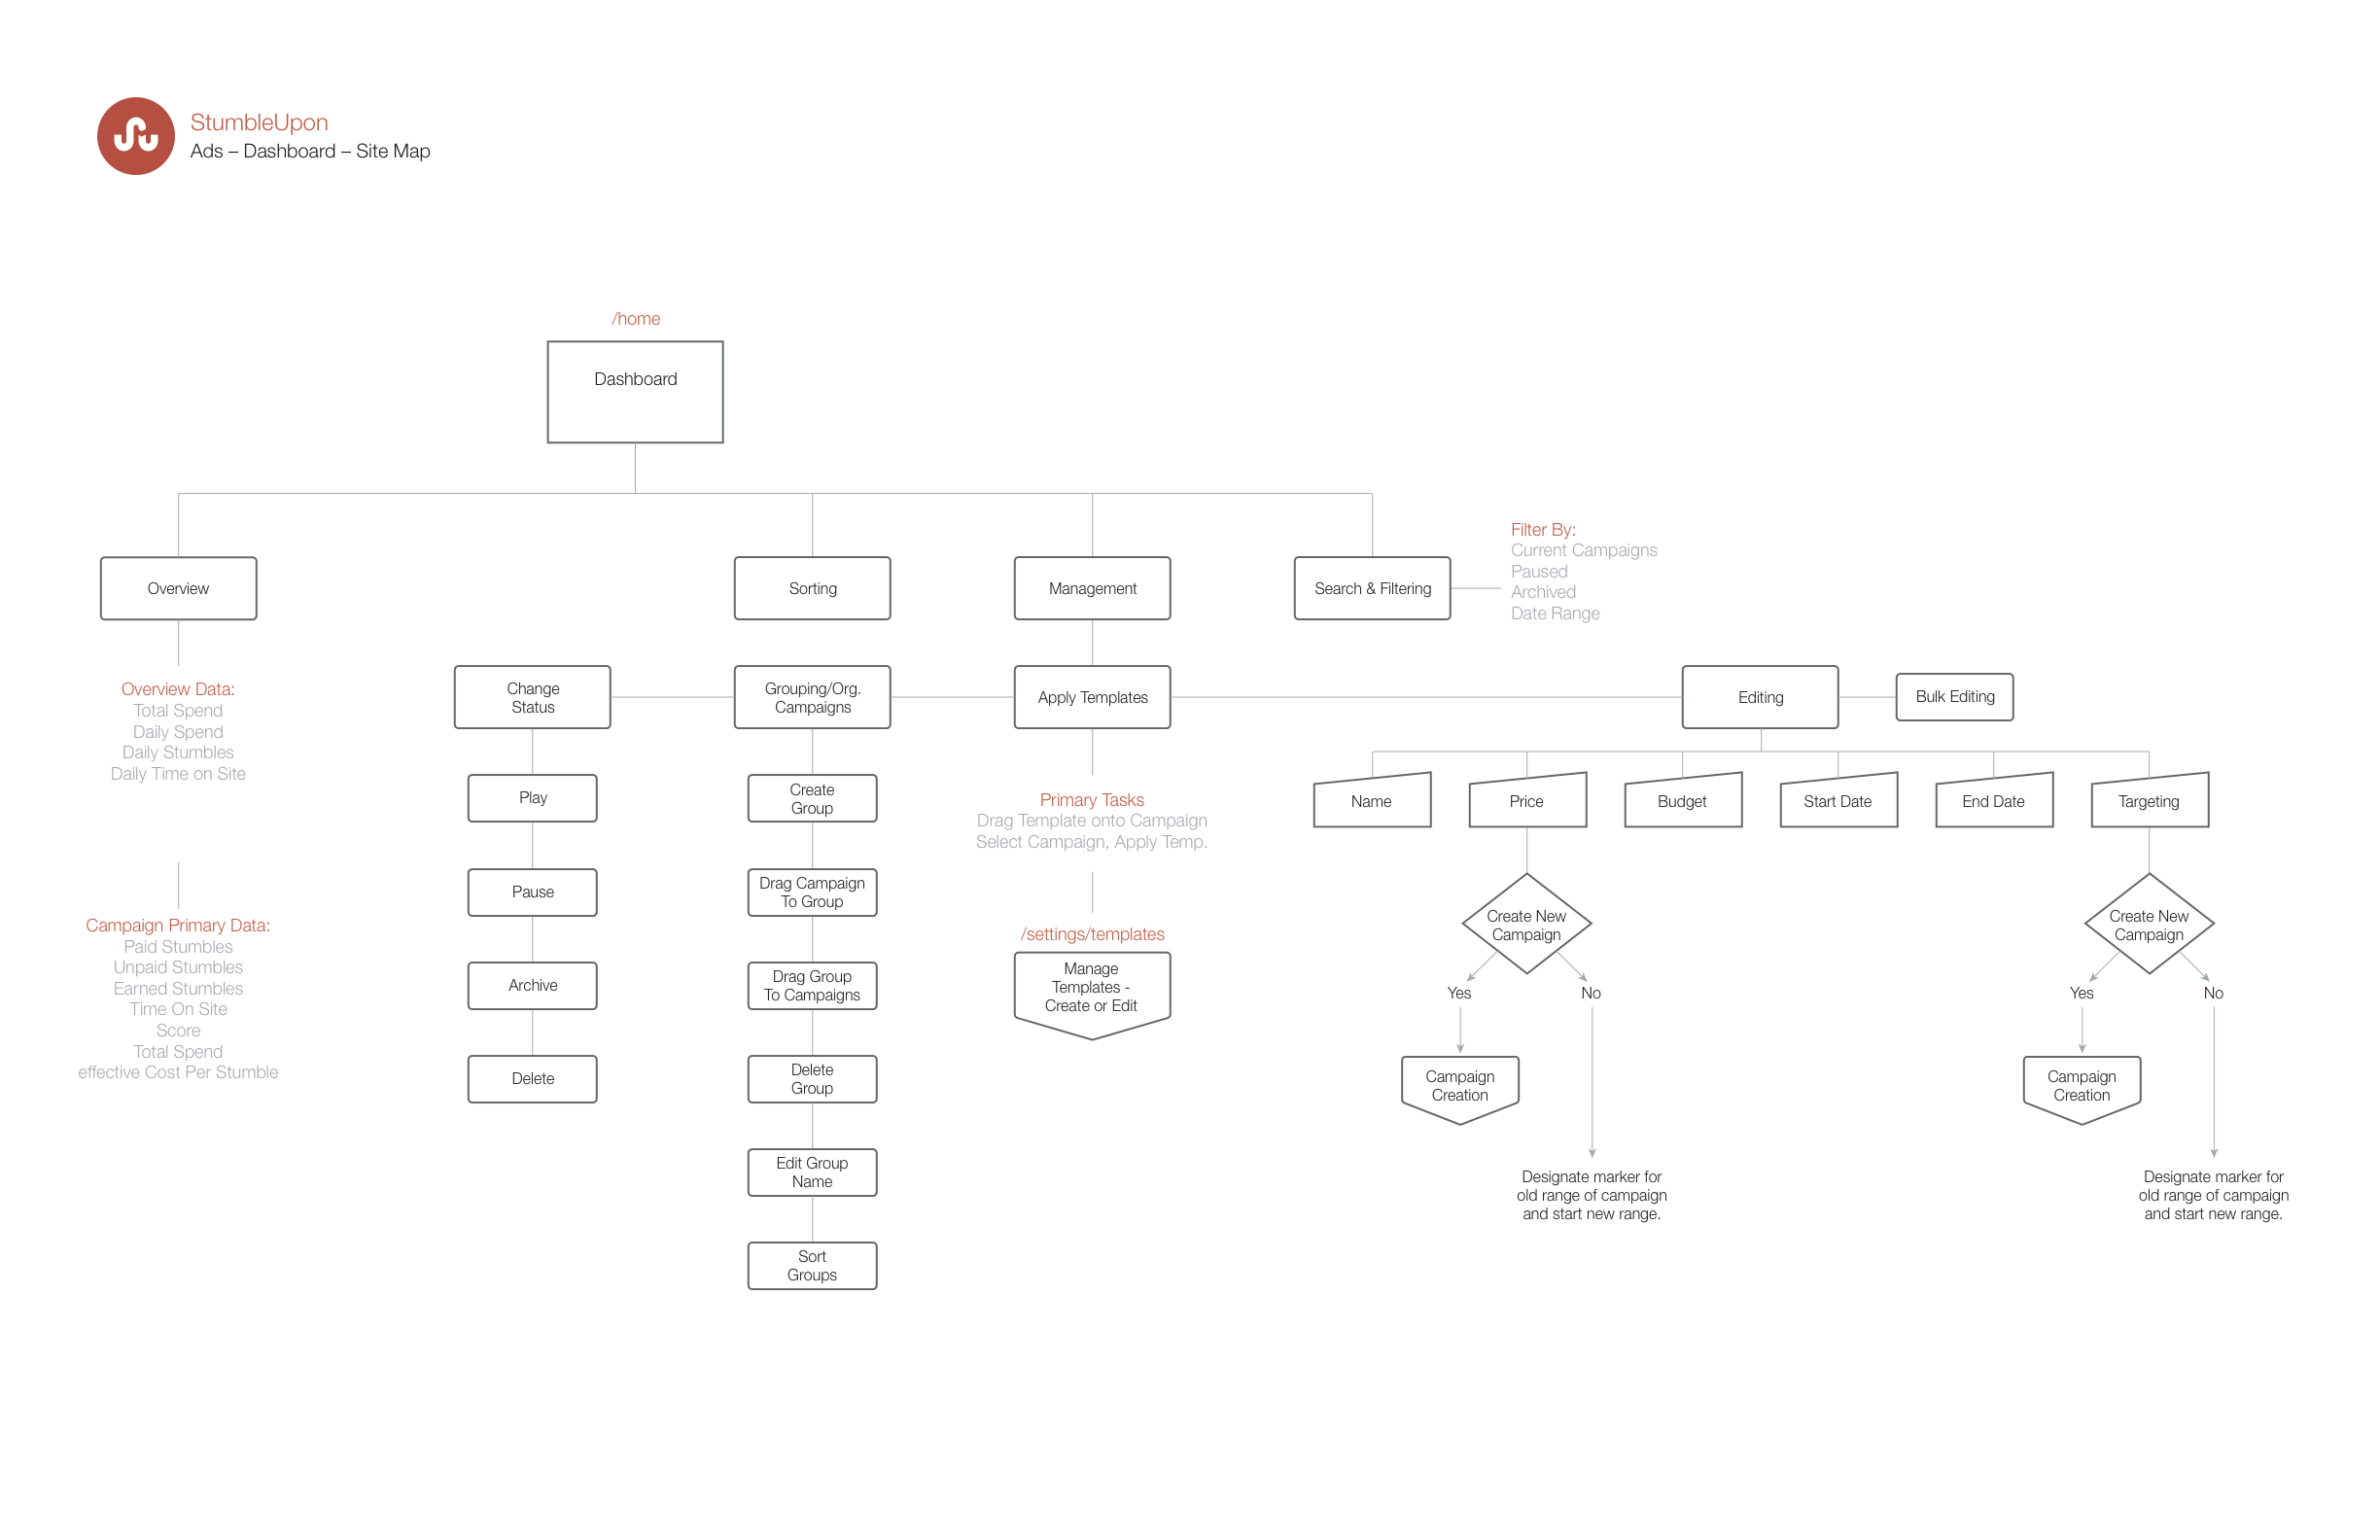 site-map-dashboard-2.png